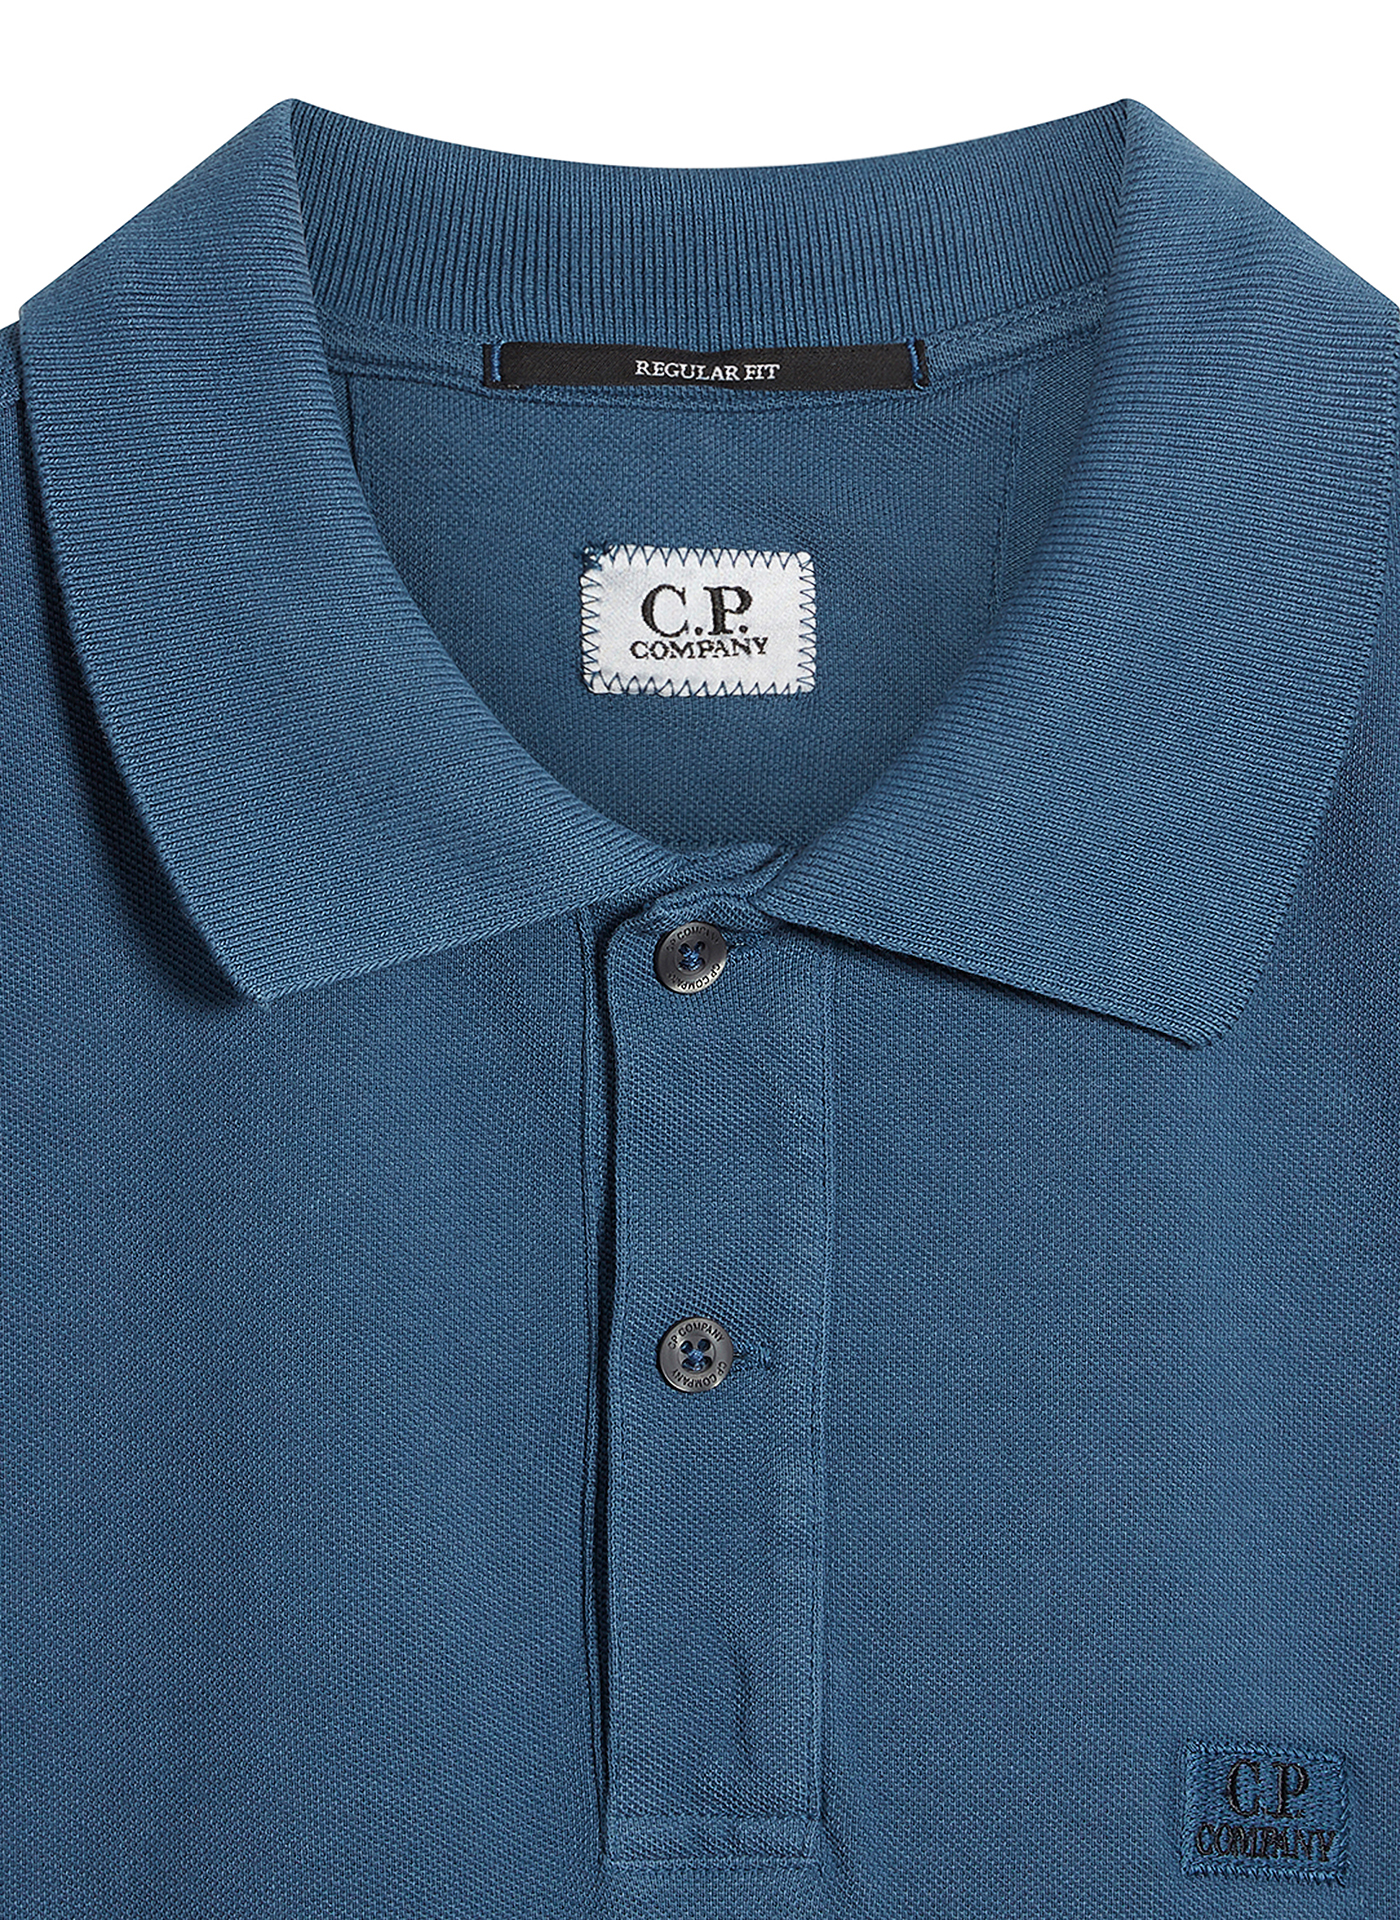 light navy C.P. polo shirt detail of the label and collar